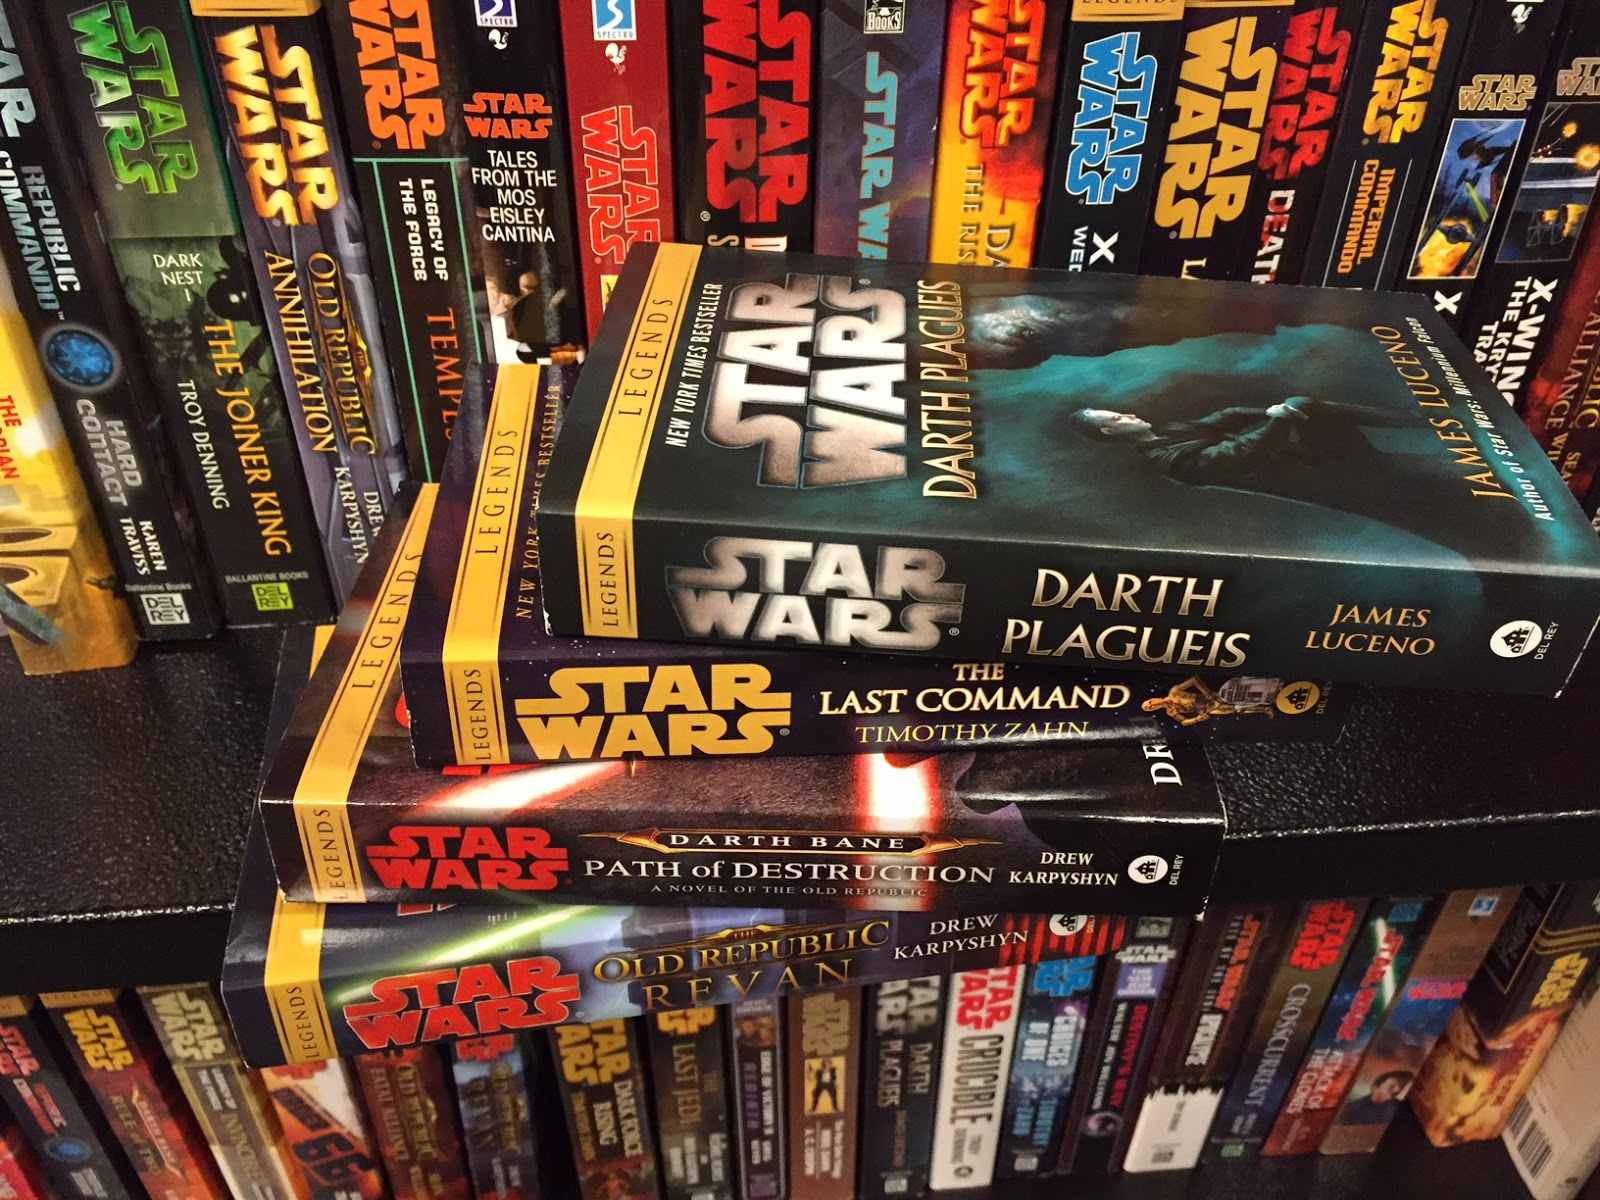 Download Star Wars Expanded Universe Wallpaper Gallery